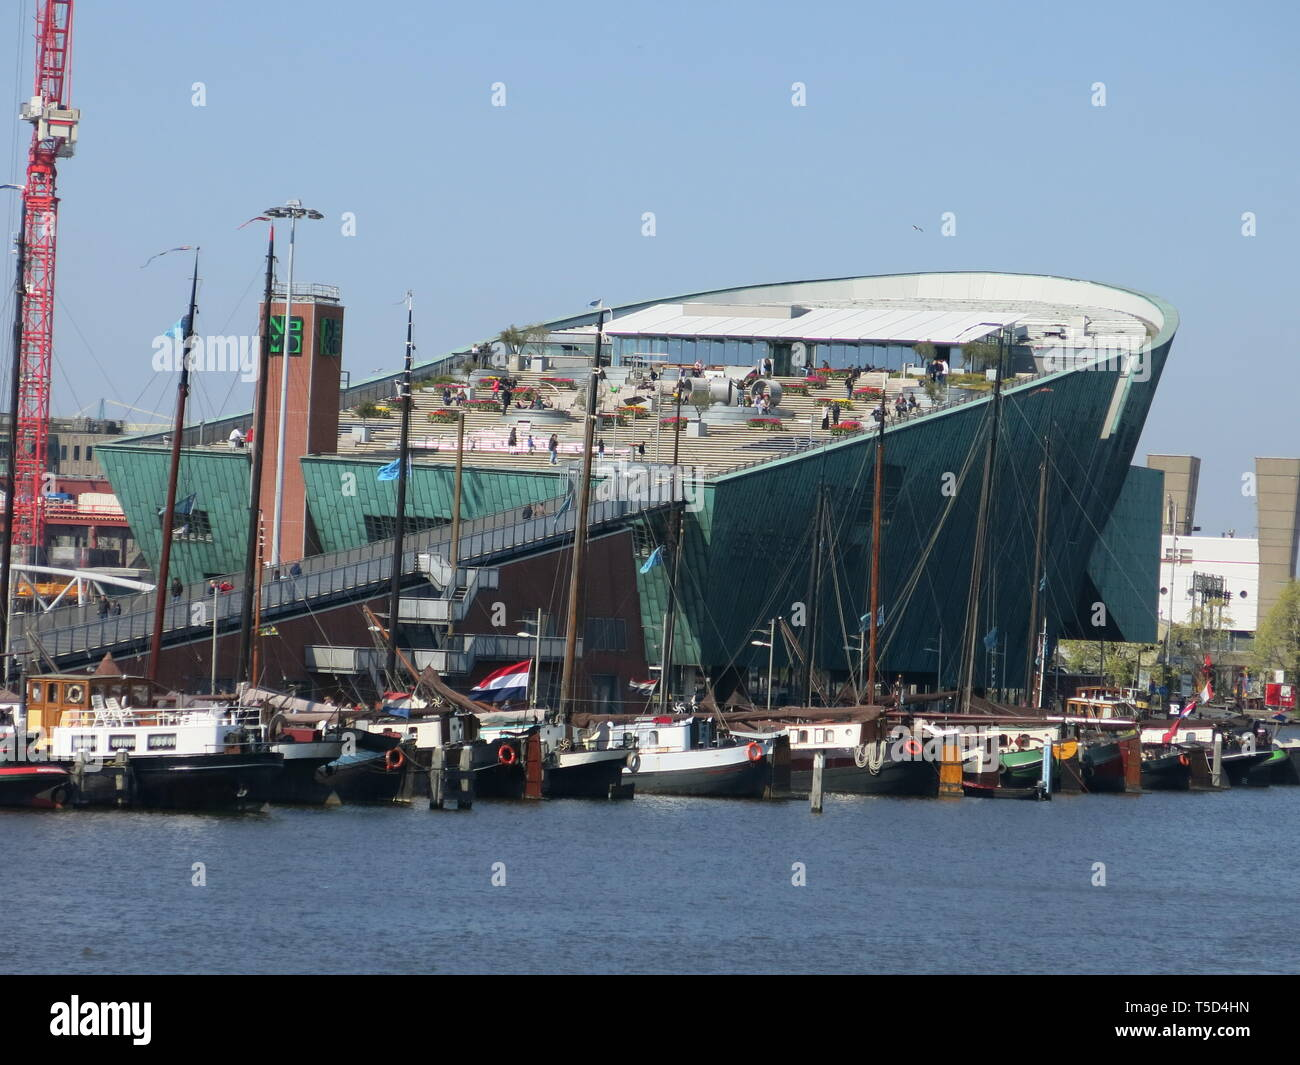 View from across the harbour of the impressive giant green hull of the boat-shaped building for NEMO Science & Technology museum in Amsterdam Stock Photo